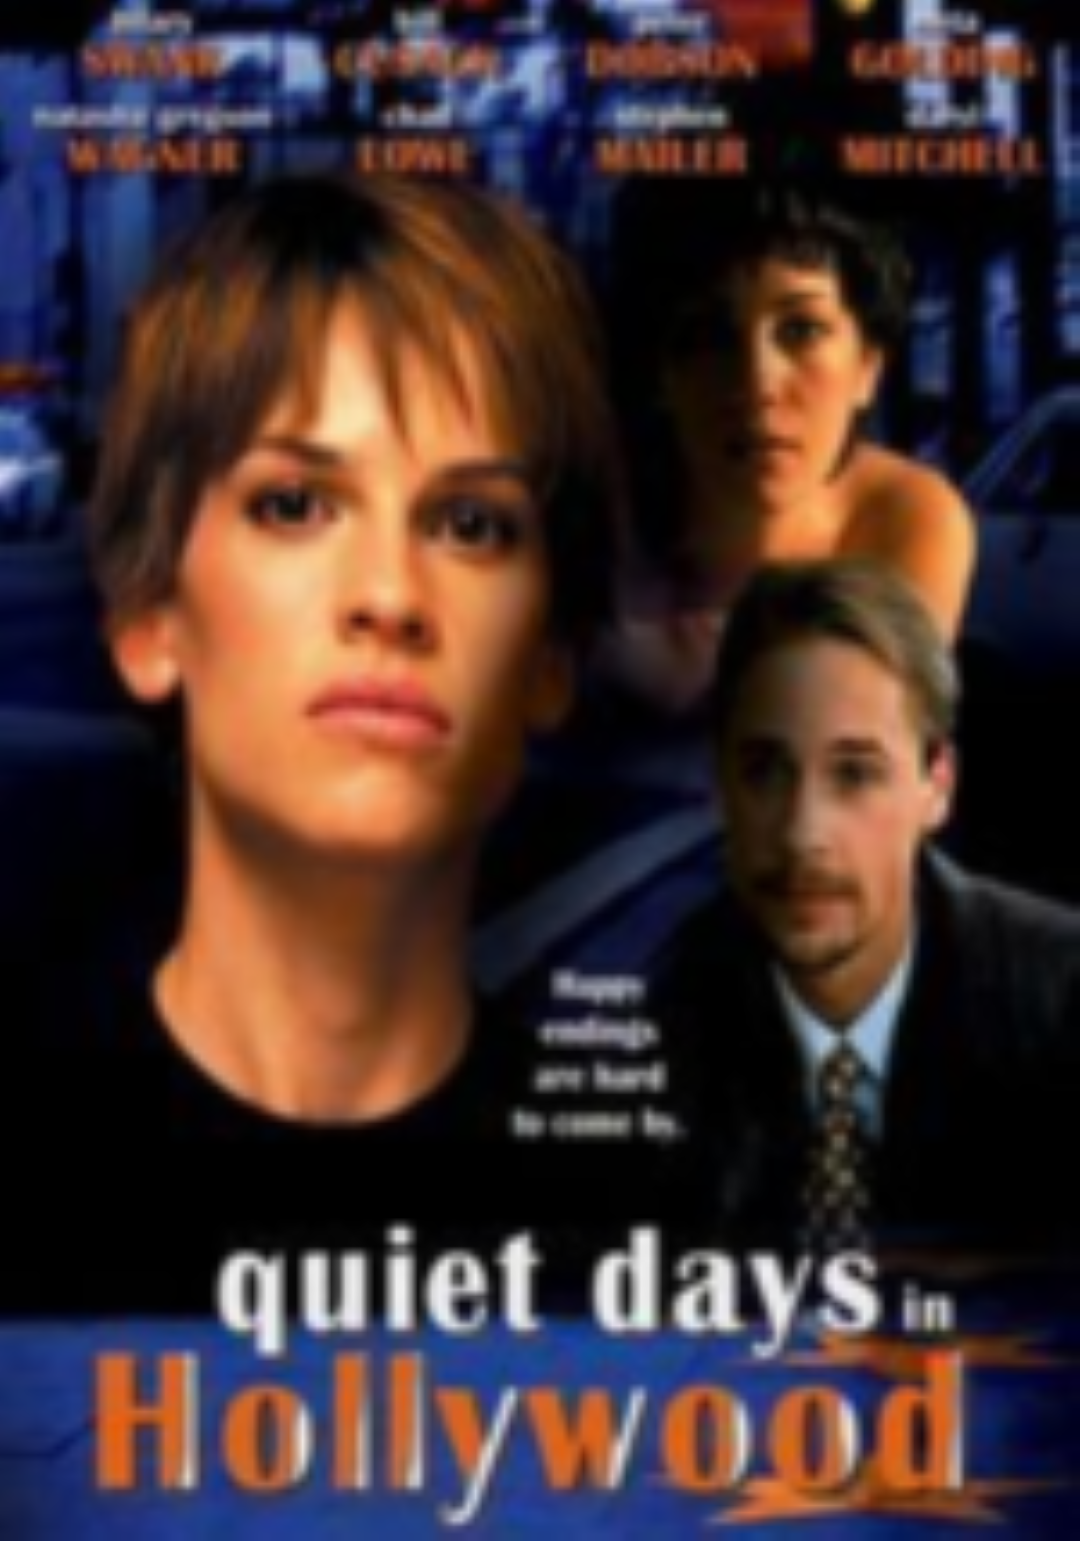 Quiet Days in Hollywood Vhs